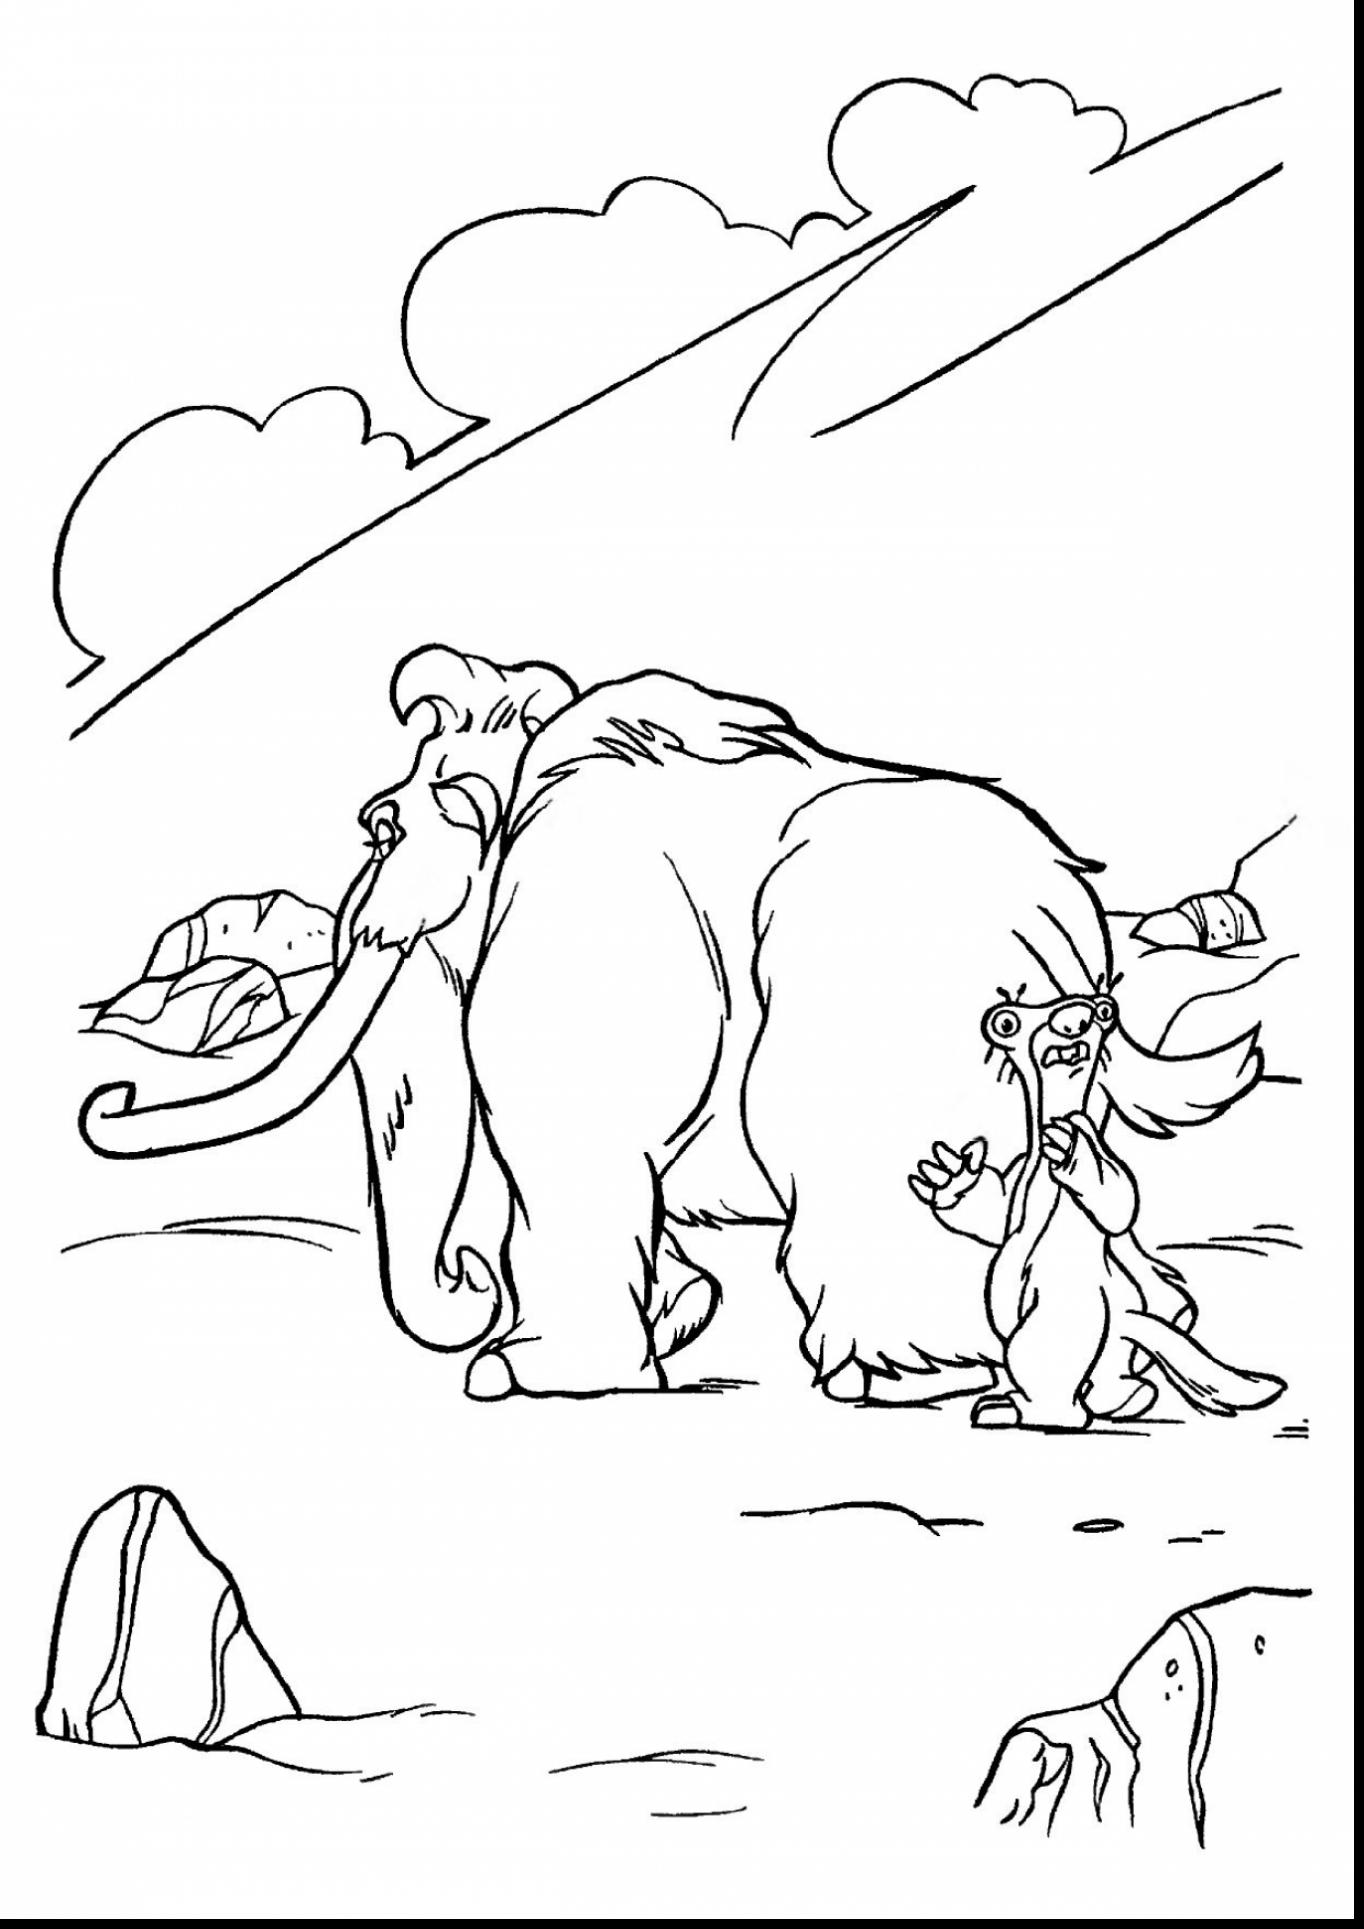 1364x1929 Ice Age Coloring Pages With Wallpaper Iphone Mayapurjacouture Ice